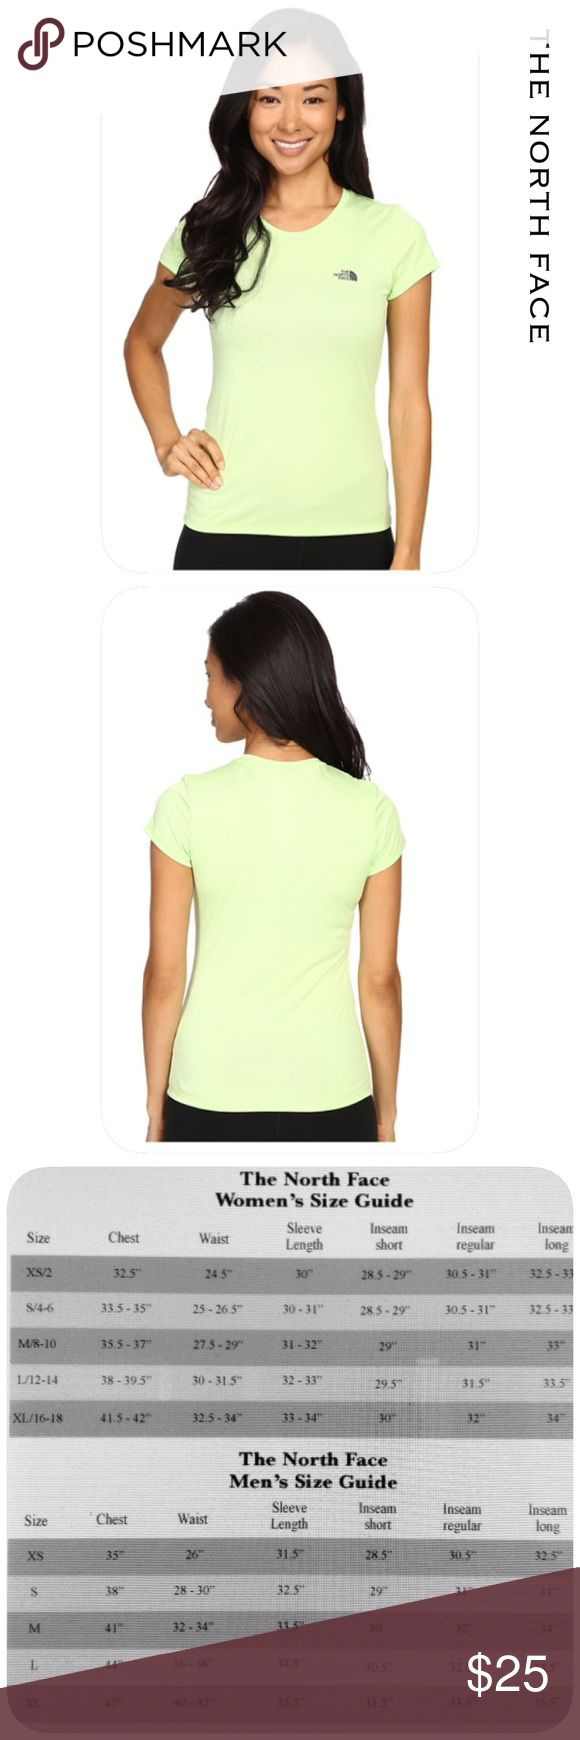 🆕 The North Face Top Vapor wick fabric. Wicks sweat and keeps you comfortable. 24 inches in length and 100% polyester. Straight hem with pop color logo and a crew neckline. Machine wash cold and tumble dry hot. Lime green in color💙. I'm sorry but I don't trade. The North Face Tops